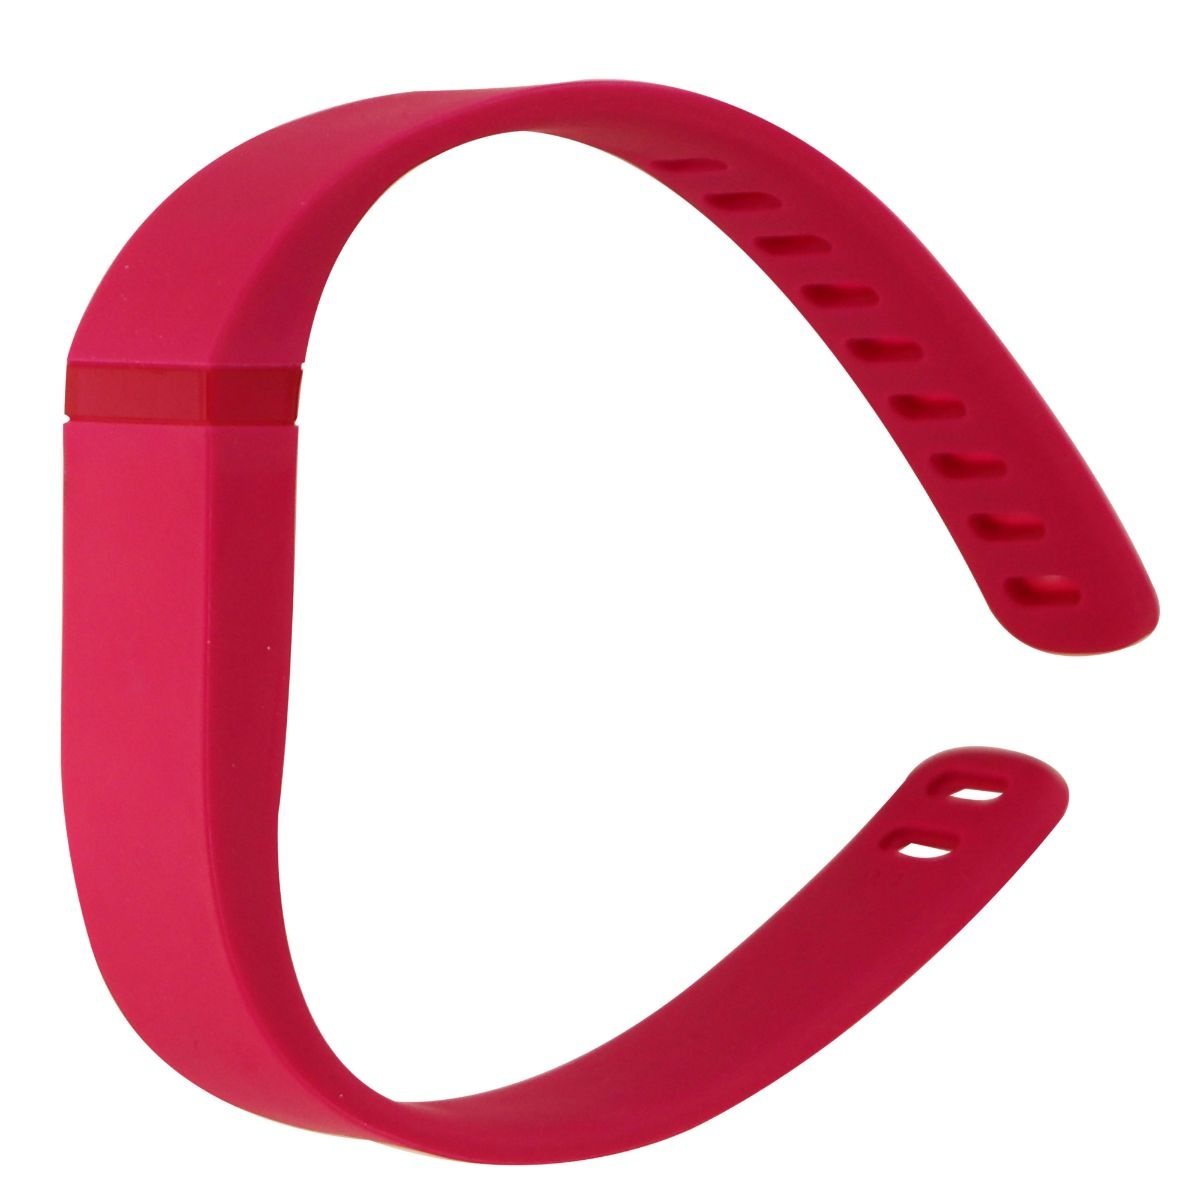 OEM Large Replacement Band for Fitbit Flex - Pink - Without Clasps